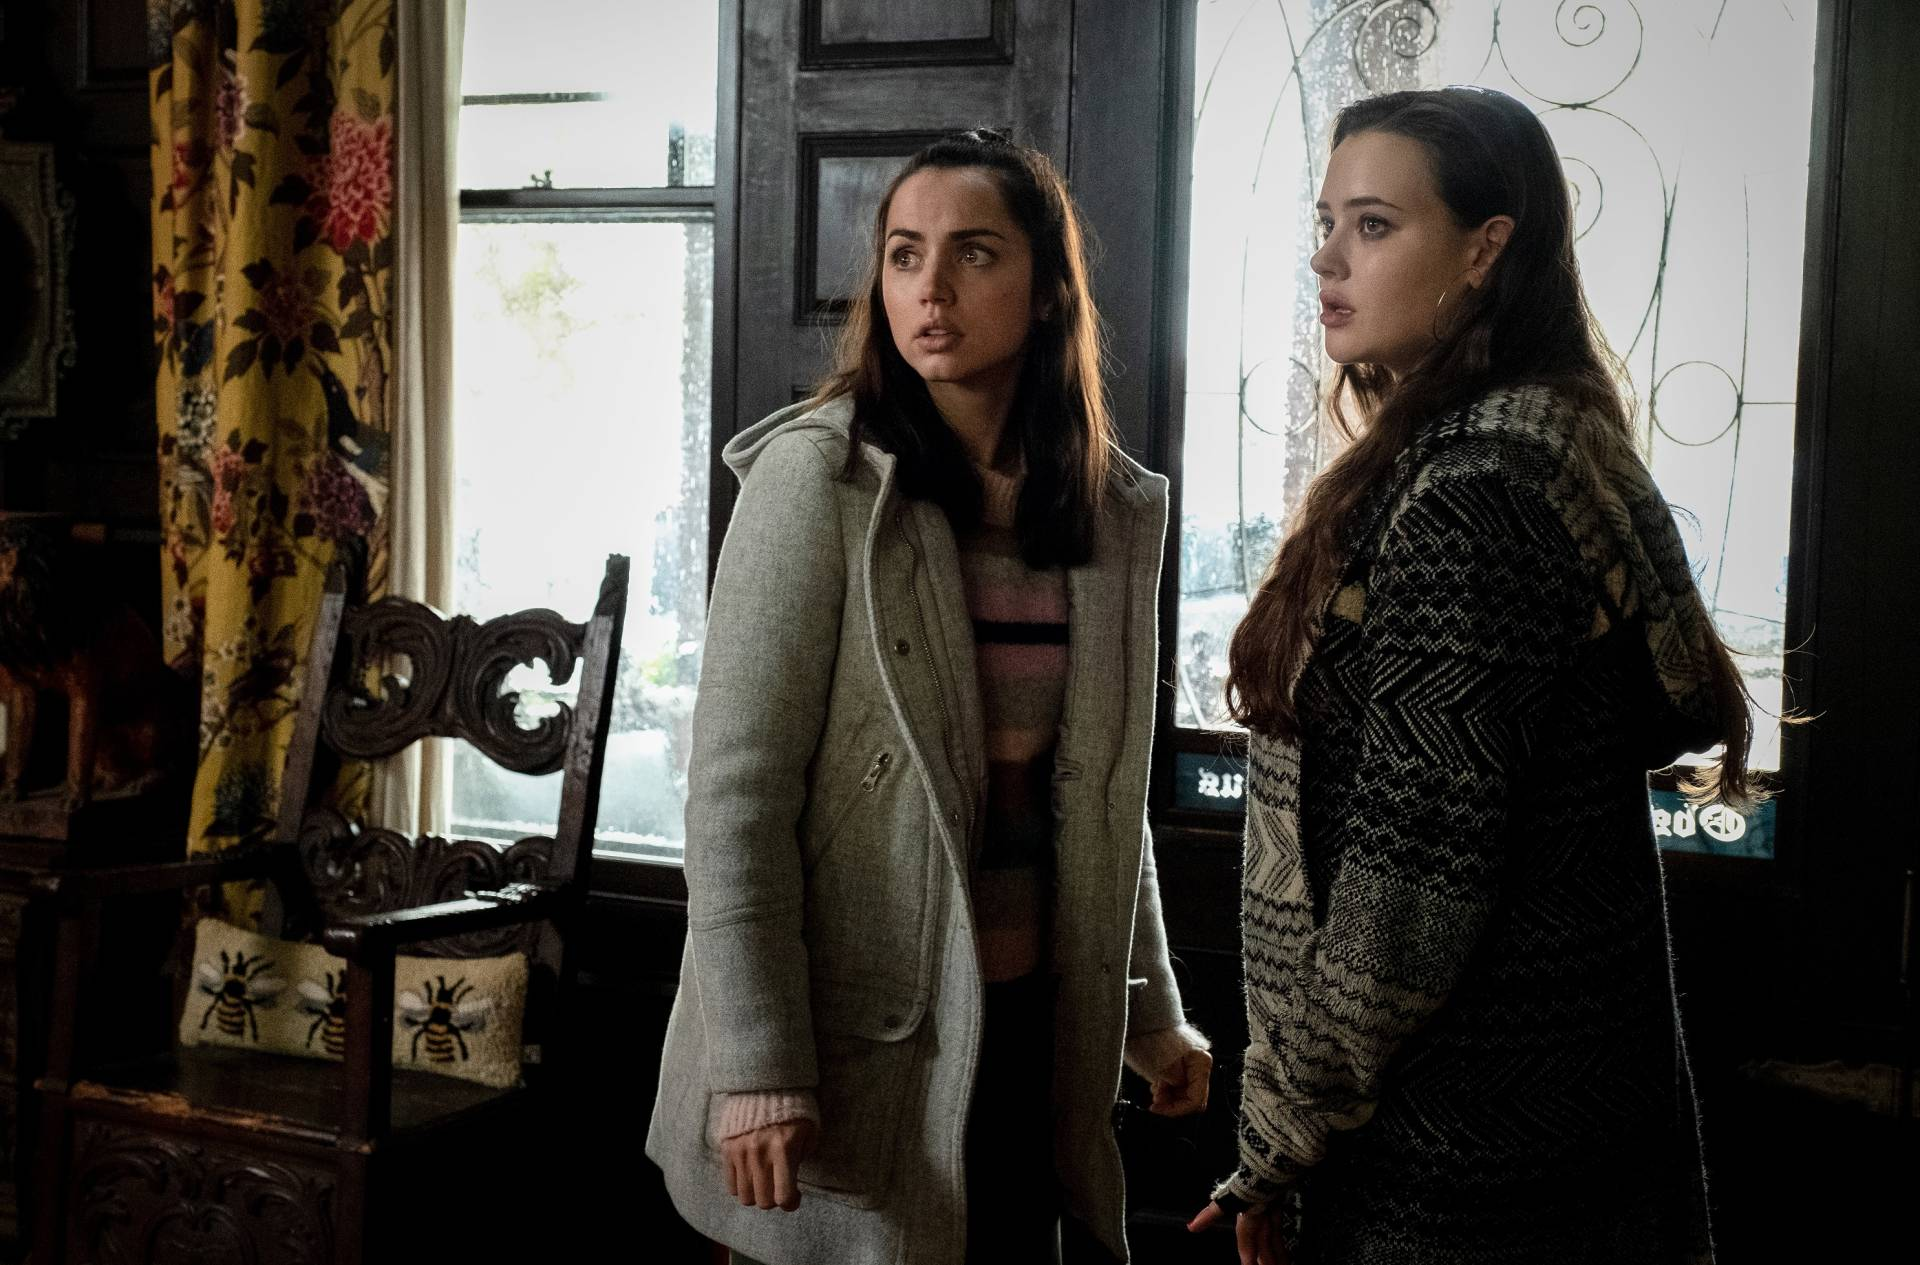 Do we get a scene with Chris Evans? Marta (Ana de Armas) and Megan Thrombey (Katherine Langford) discuss their concerns.